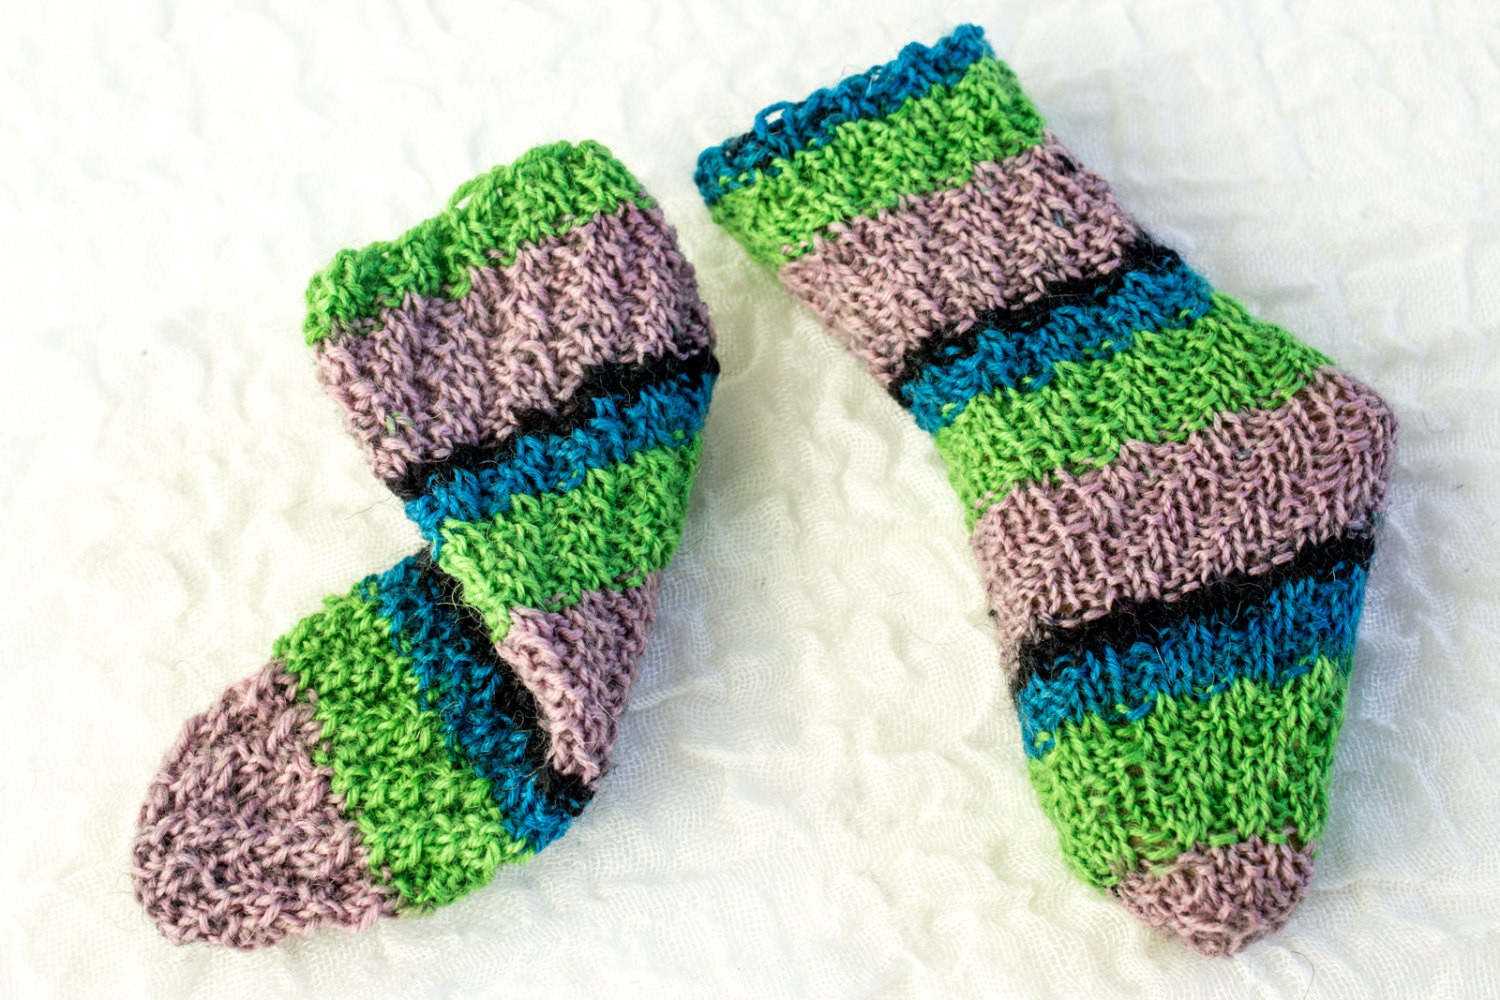 Inspirational Knitting Pattern Baby socks Tube socks Knitted Magic Spiral Baby socks Knitting Pattern Of Marvelous 40 Photos Baby socks Knitting Pattern